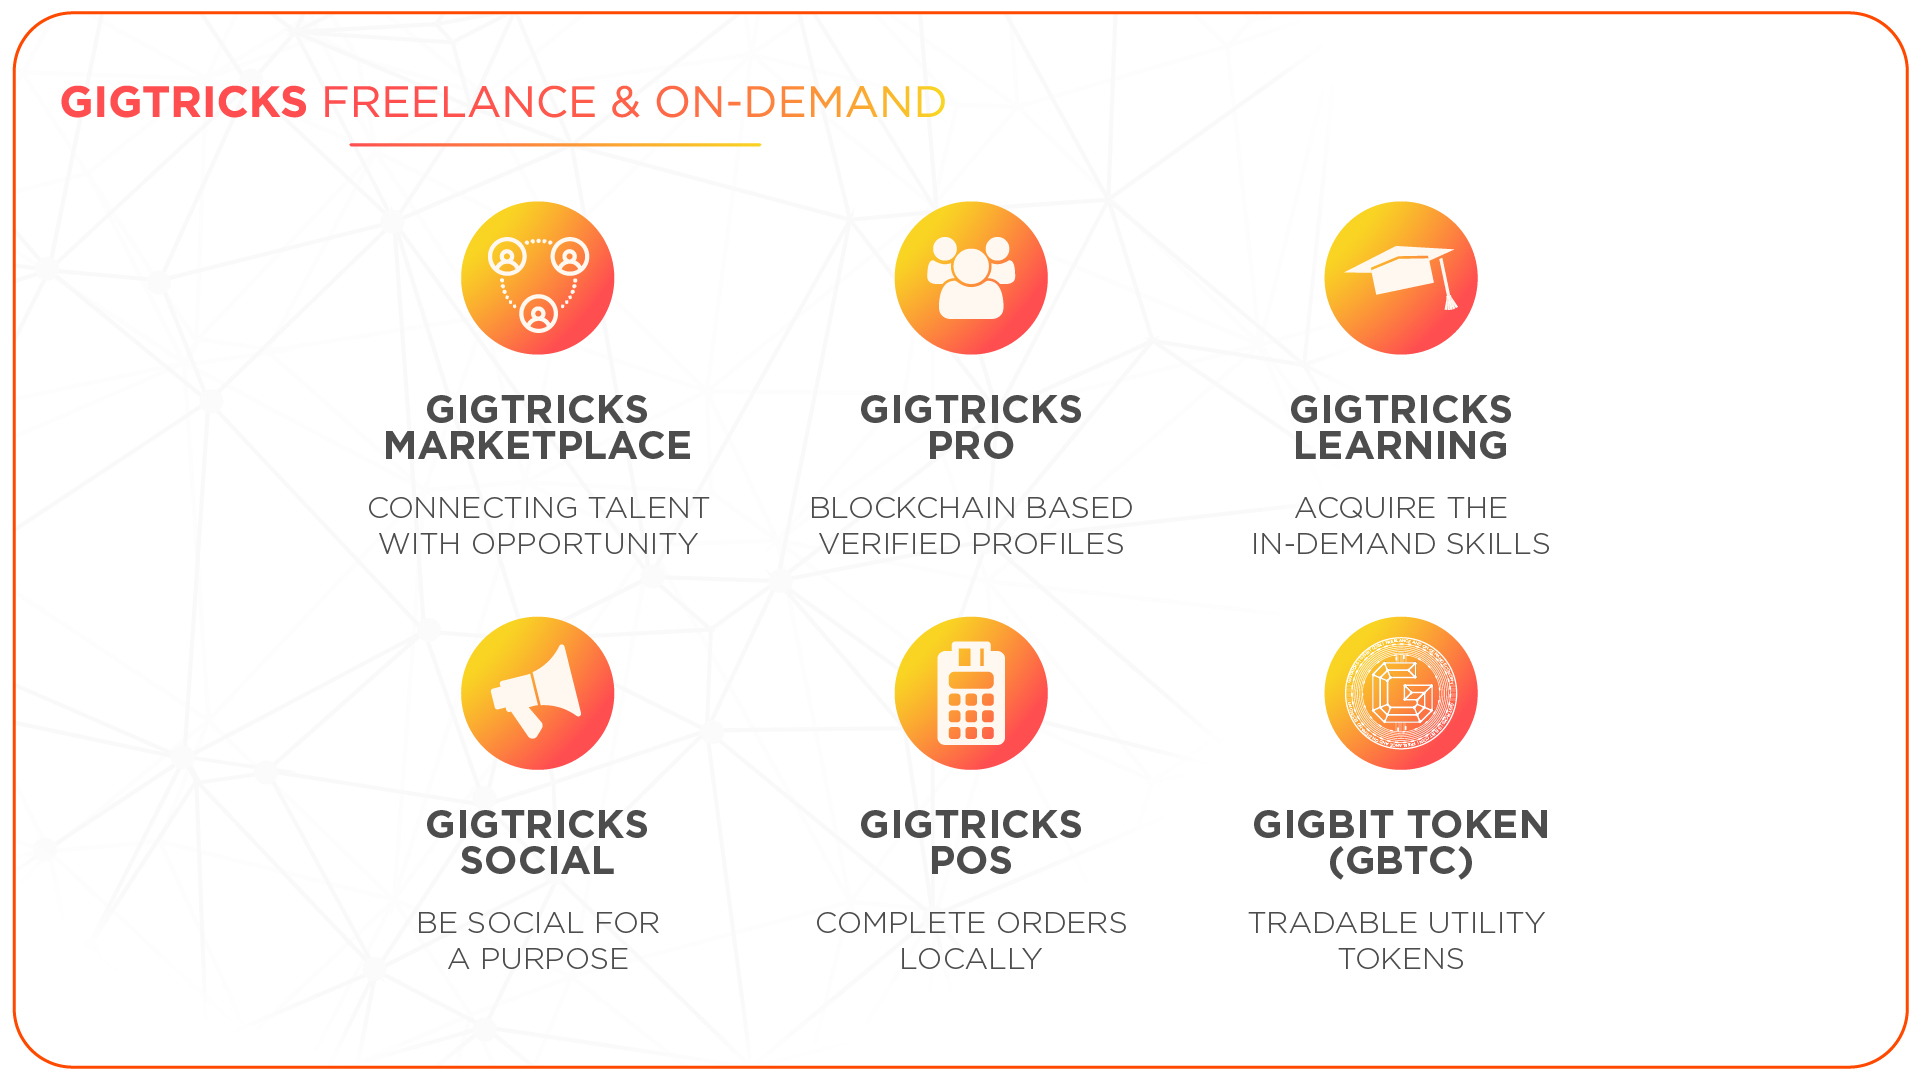 GigTricks_Freelance _ on Demand.jpg